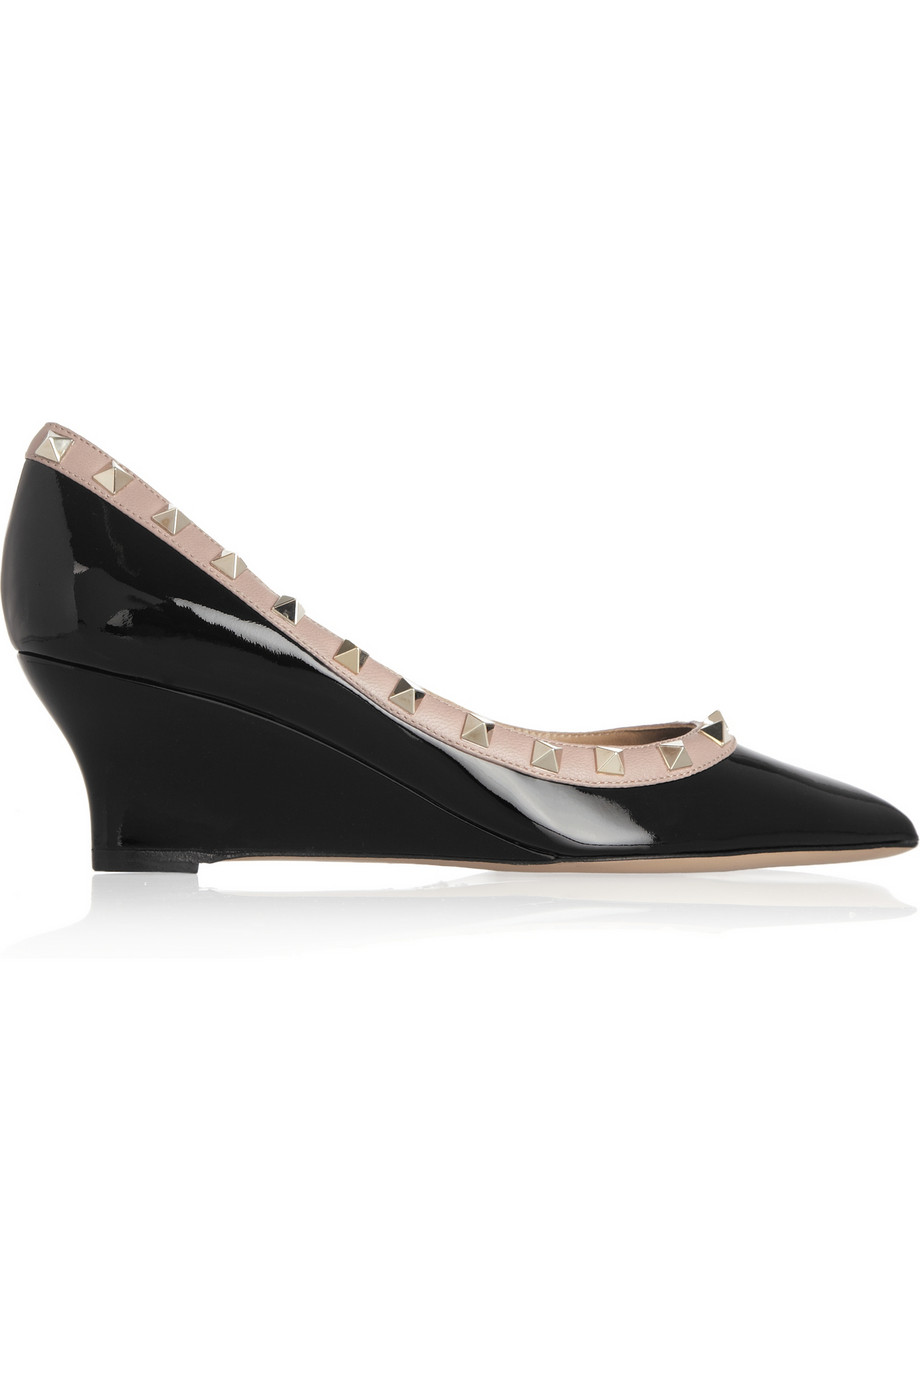 5d3163b66c00 Valentino Studded Patentleather Wedge Pumps in Black - Lyst